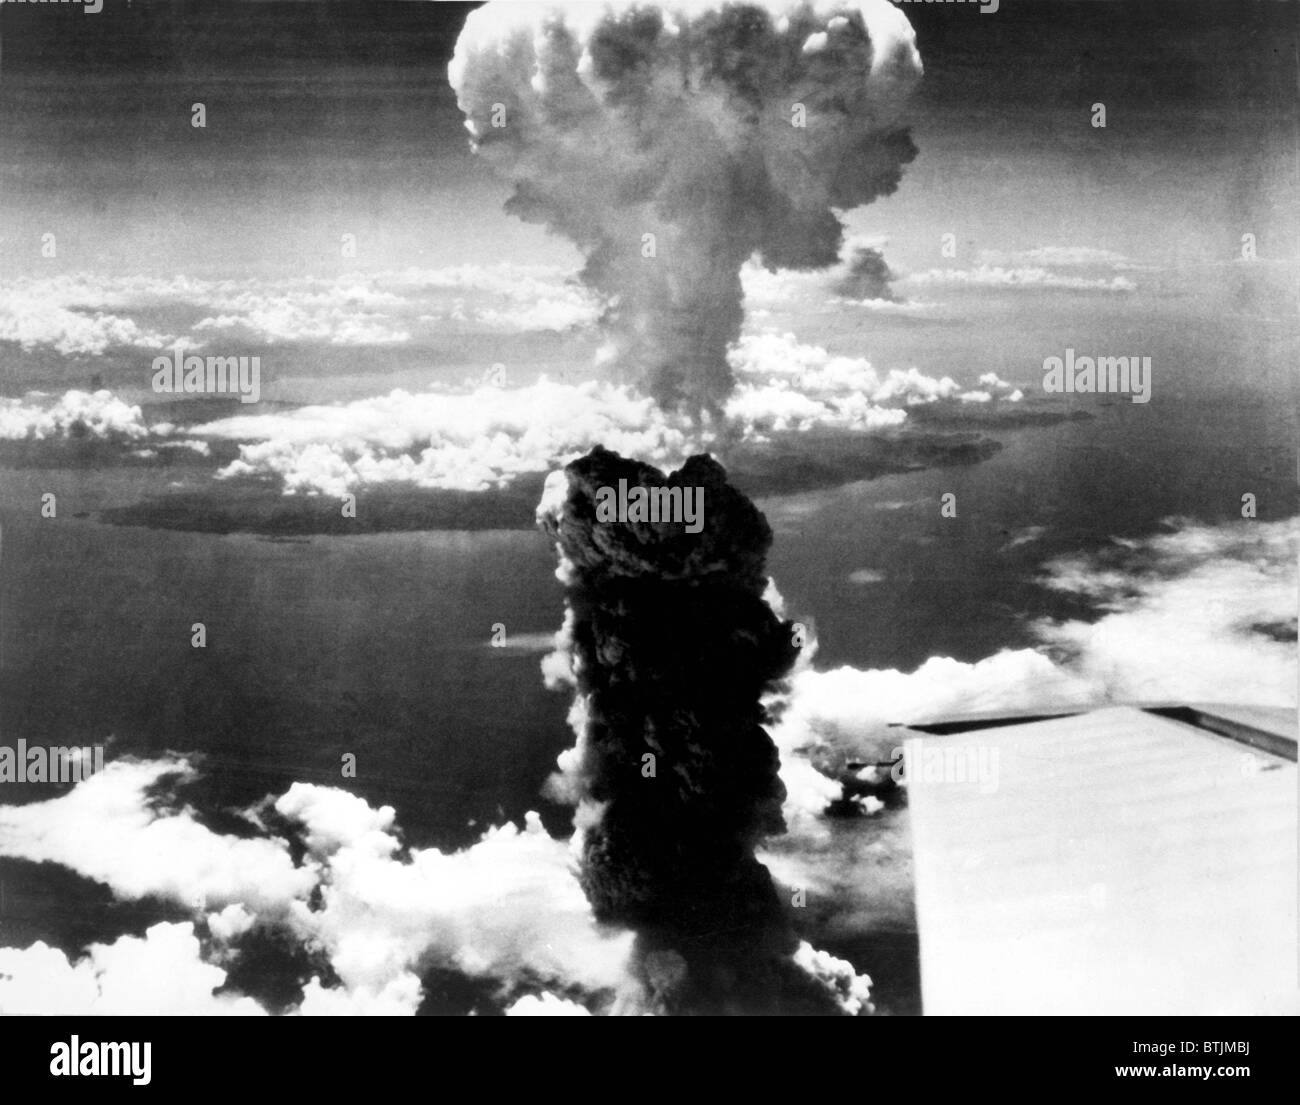 Atomic bomb. A mushroom cloud rises more than 60,000 feet into the air over Nagasaki, Japan after an atomic bomb Stock Photo